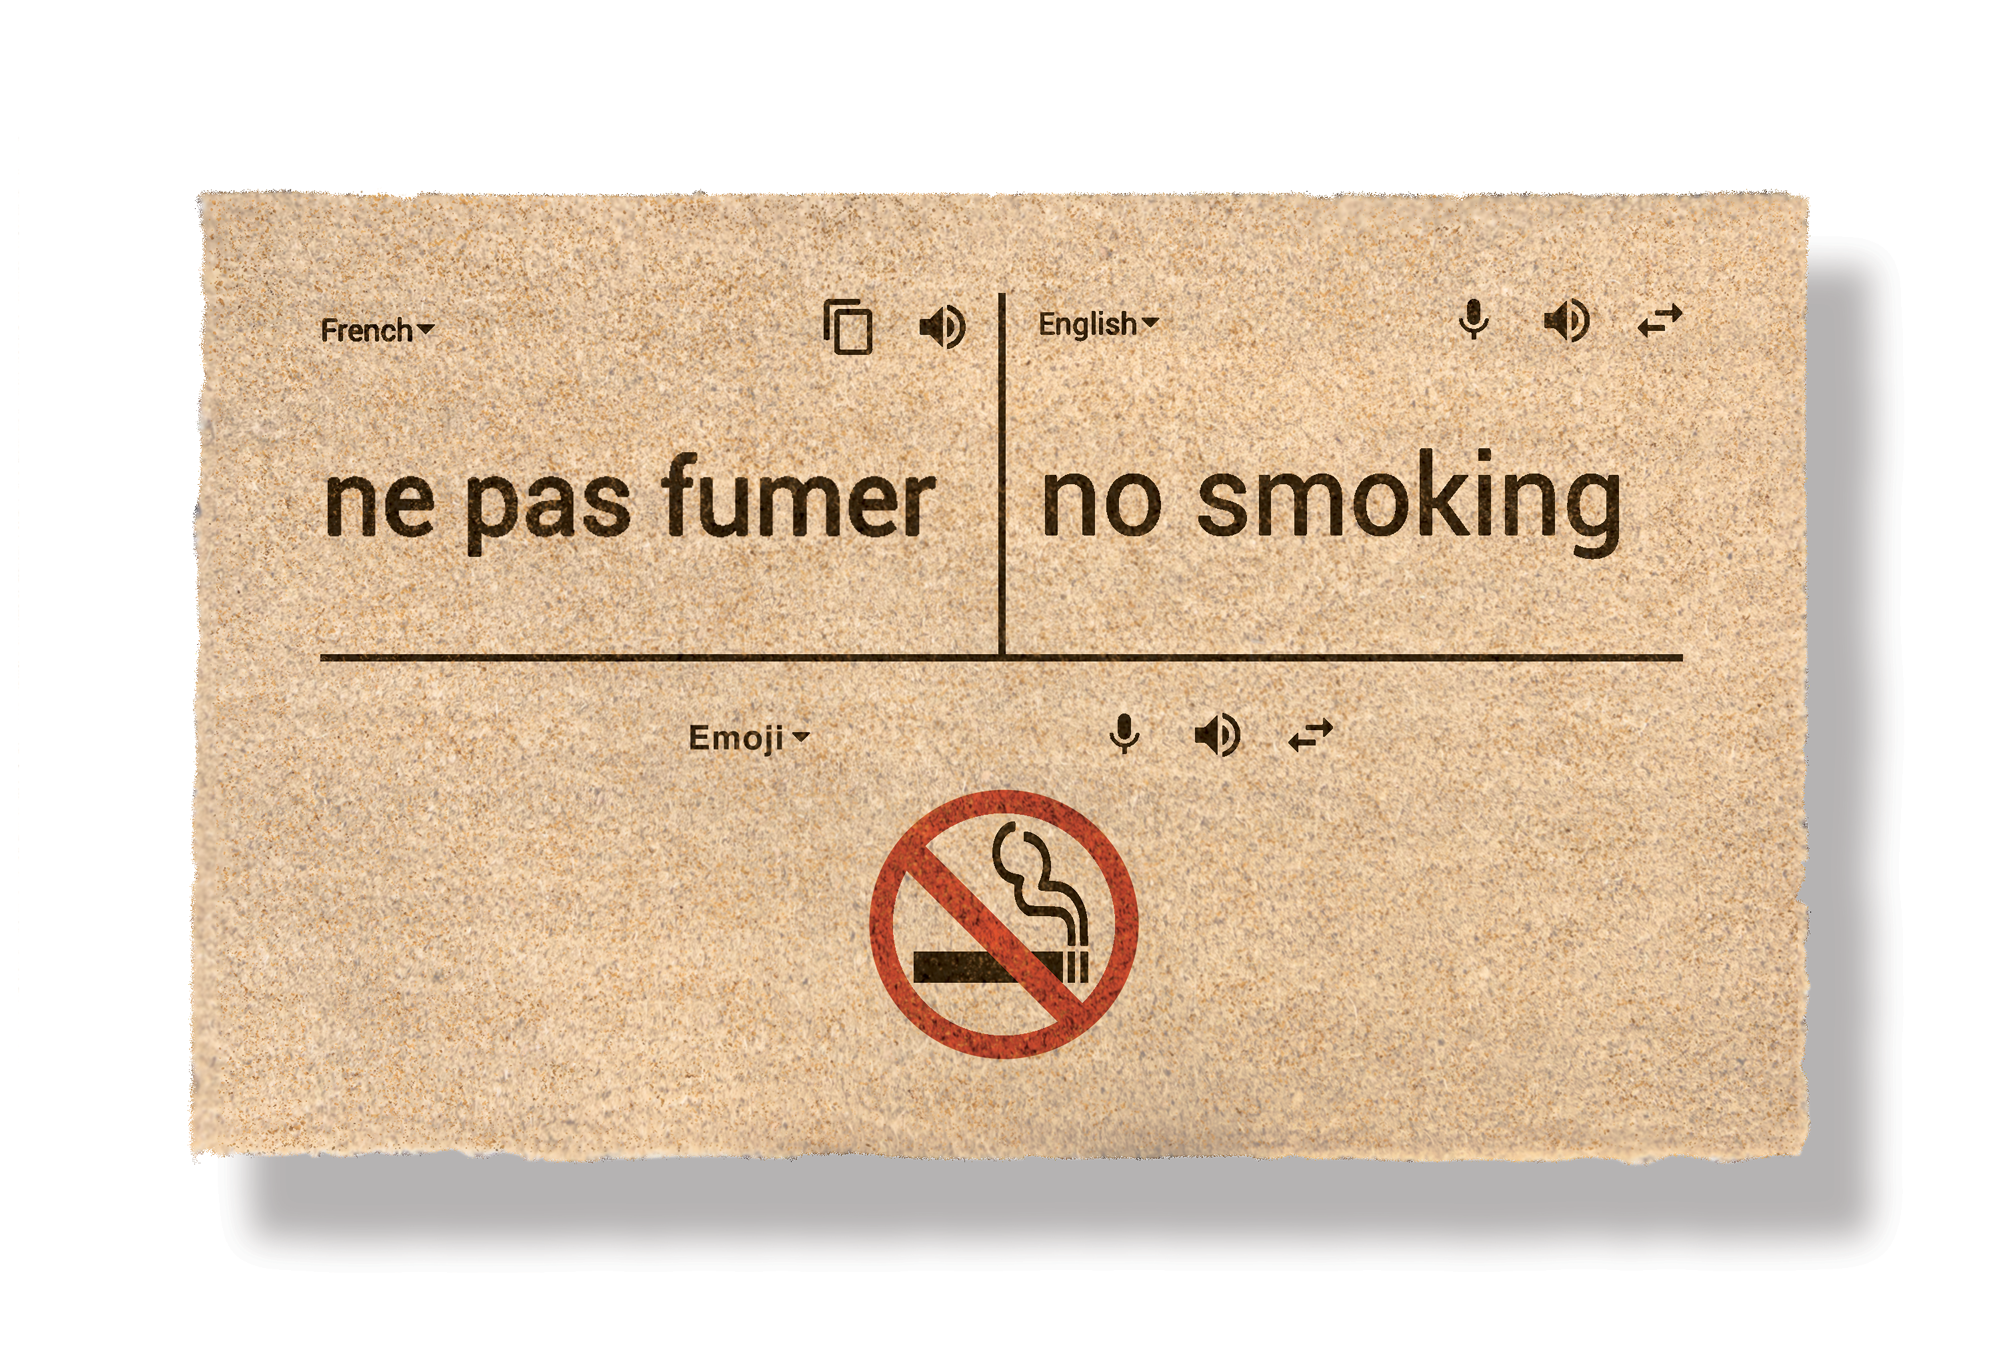 NO SMOKING IN FRANCE